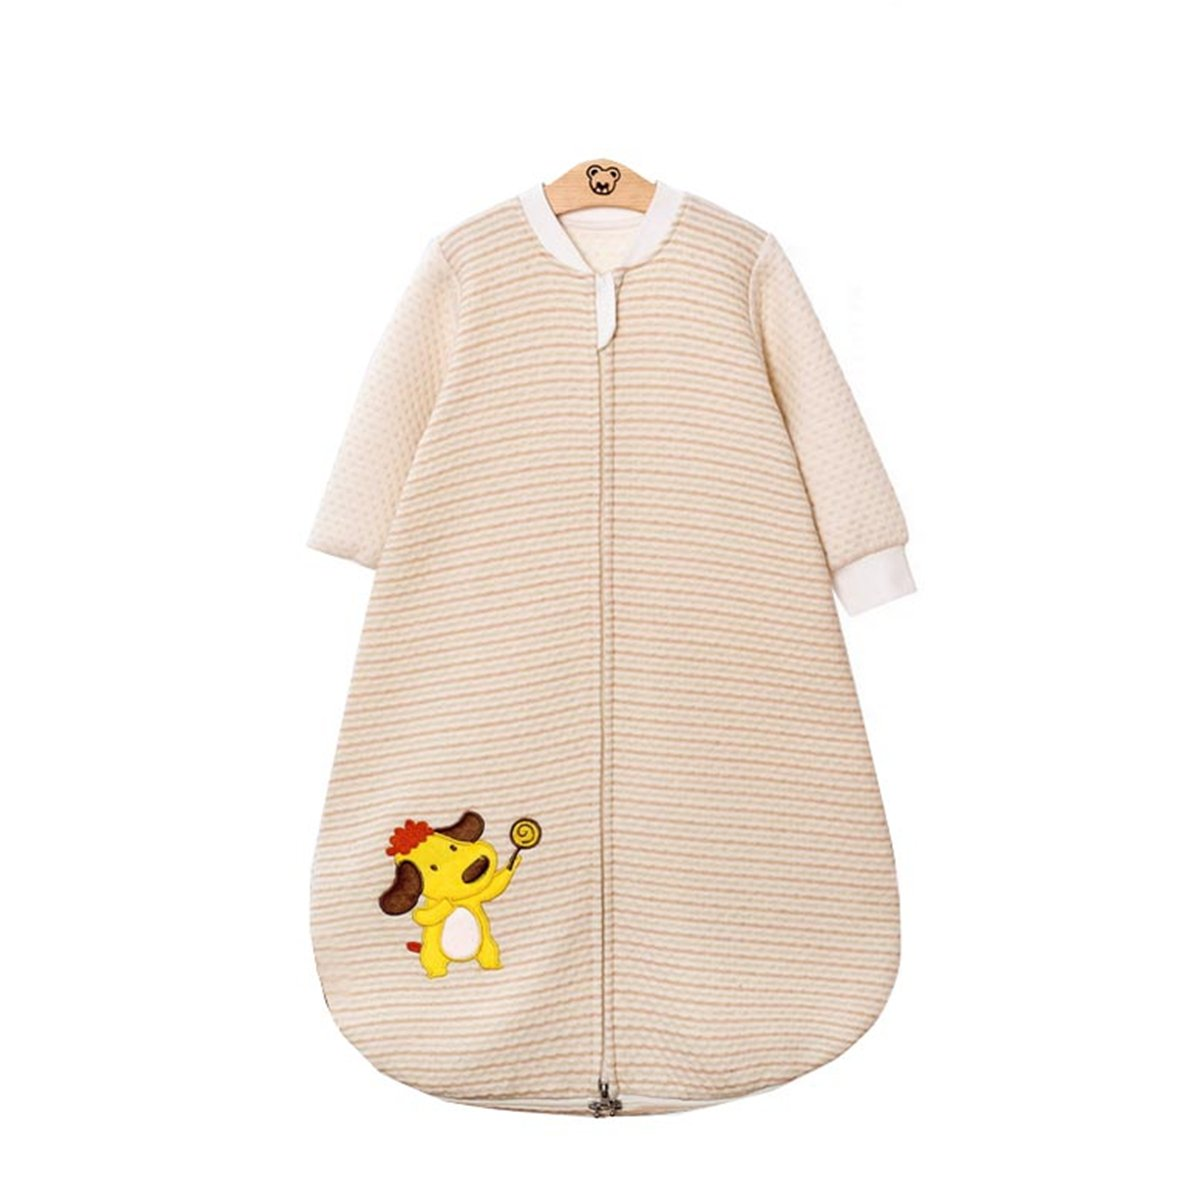 Removable long sleeves/£/¬1 Tog 3# Chilsuessy Unisex Baby Sleeping Bag 100/% organic Cotton 75//Body Height 27.5-31.4